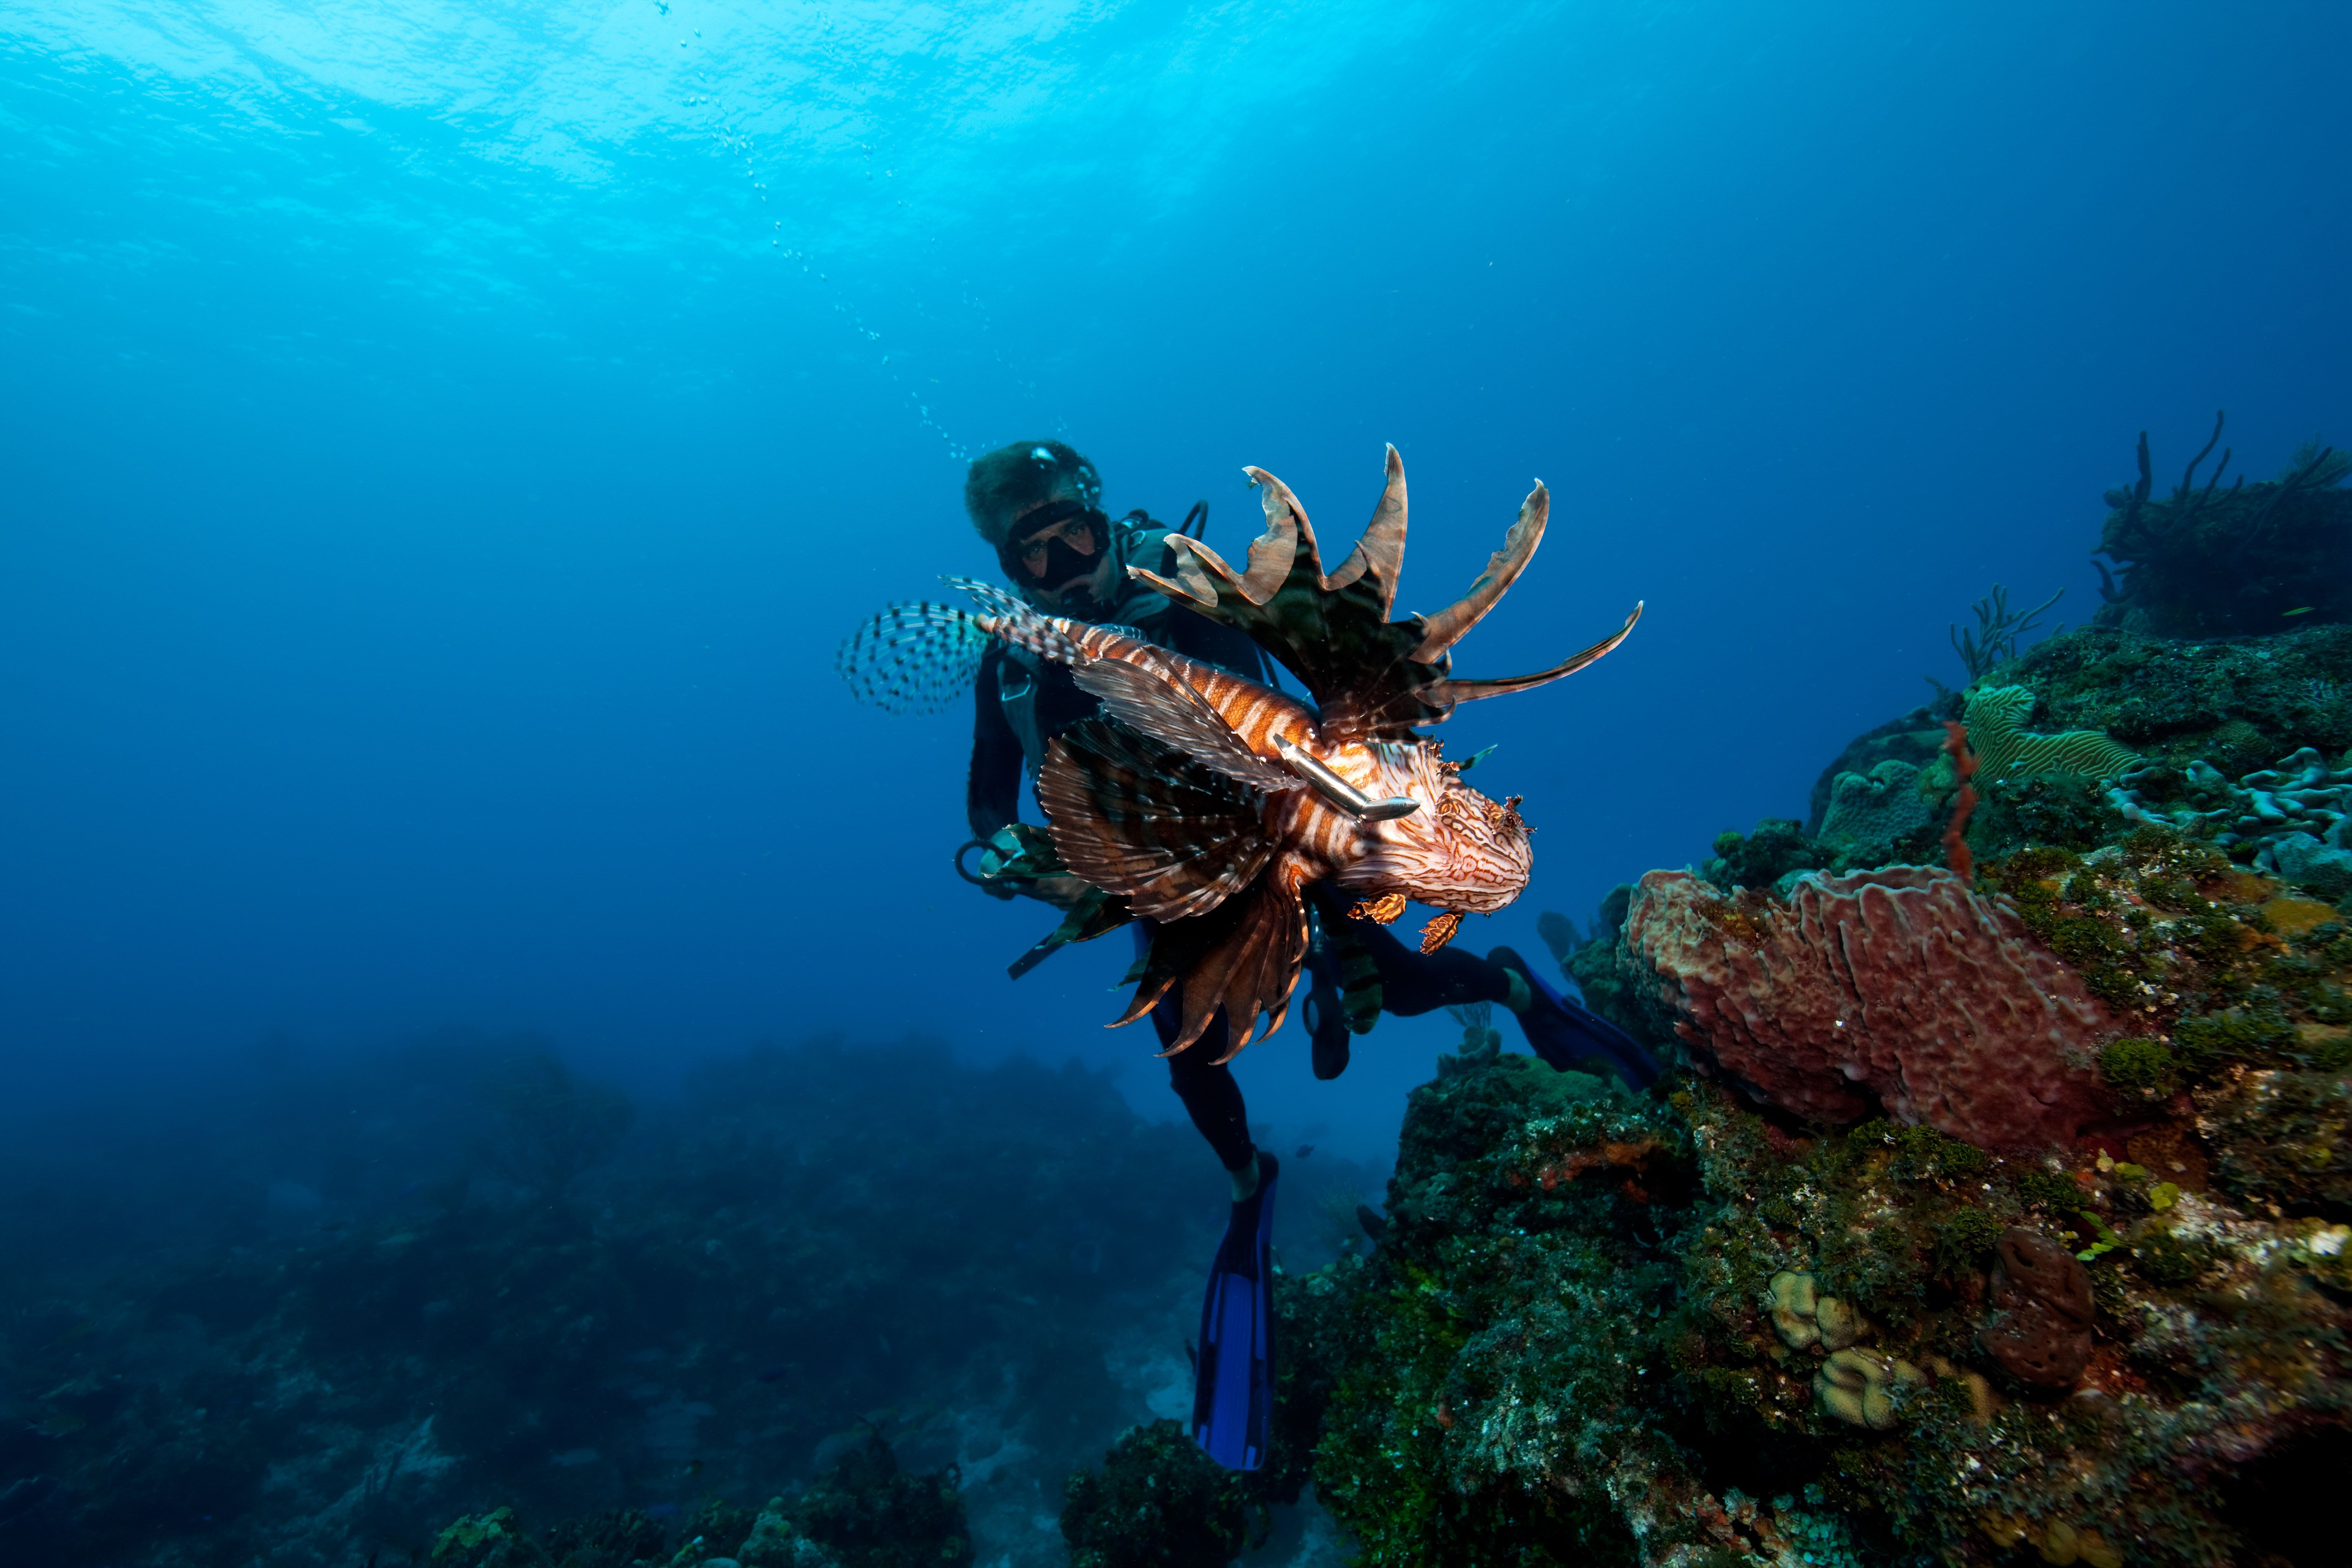 Diver and invasive lionfish